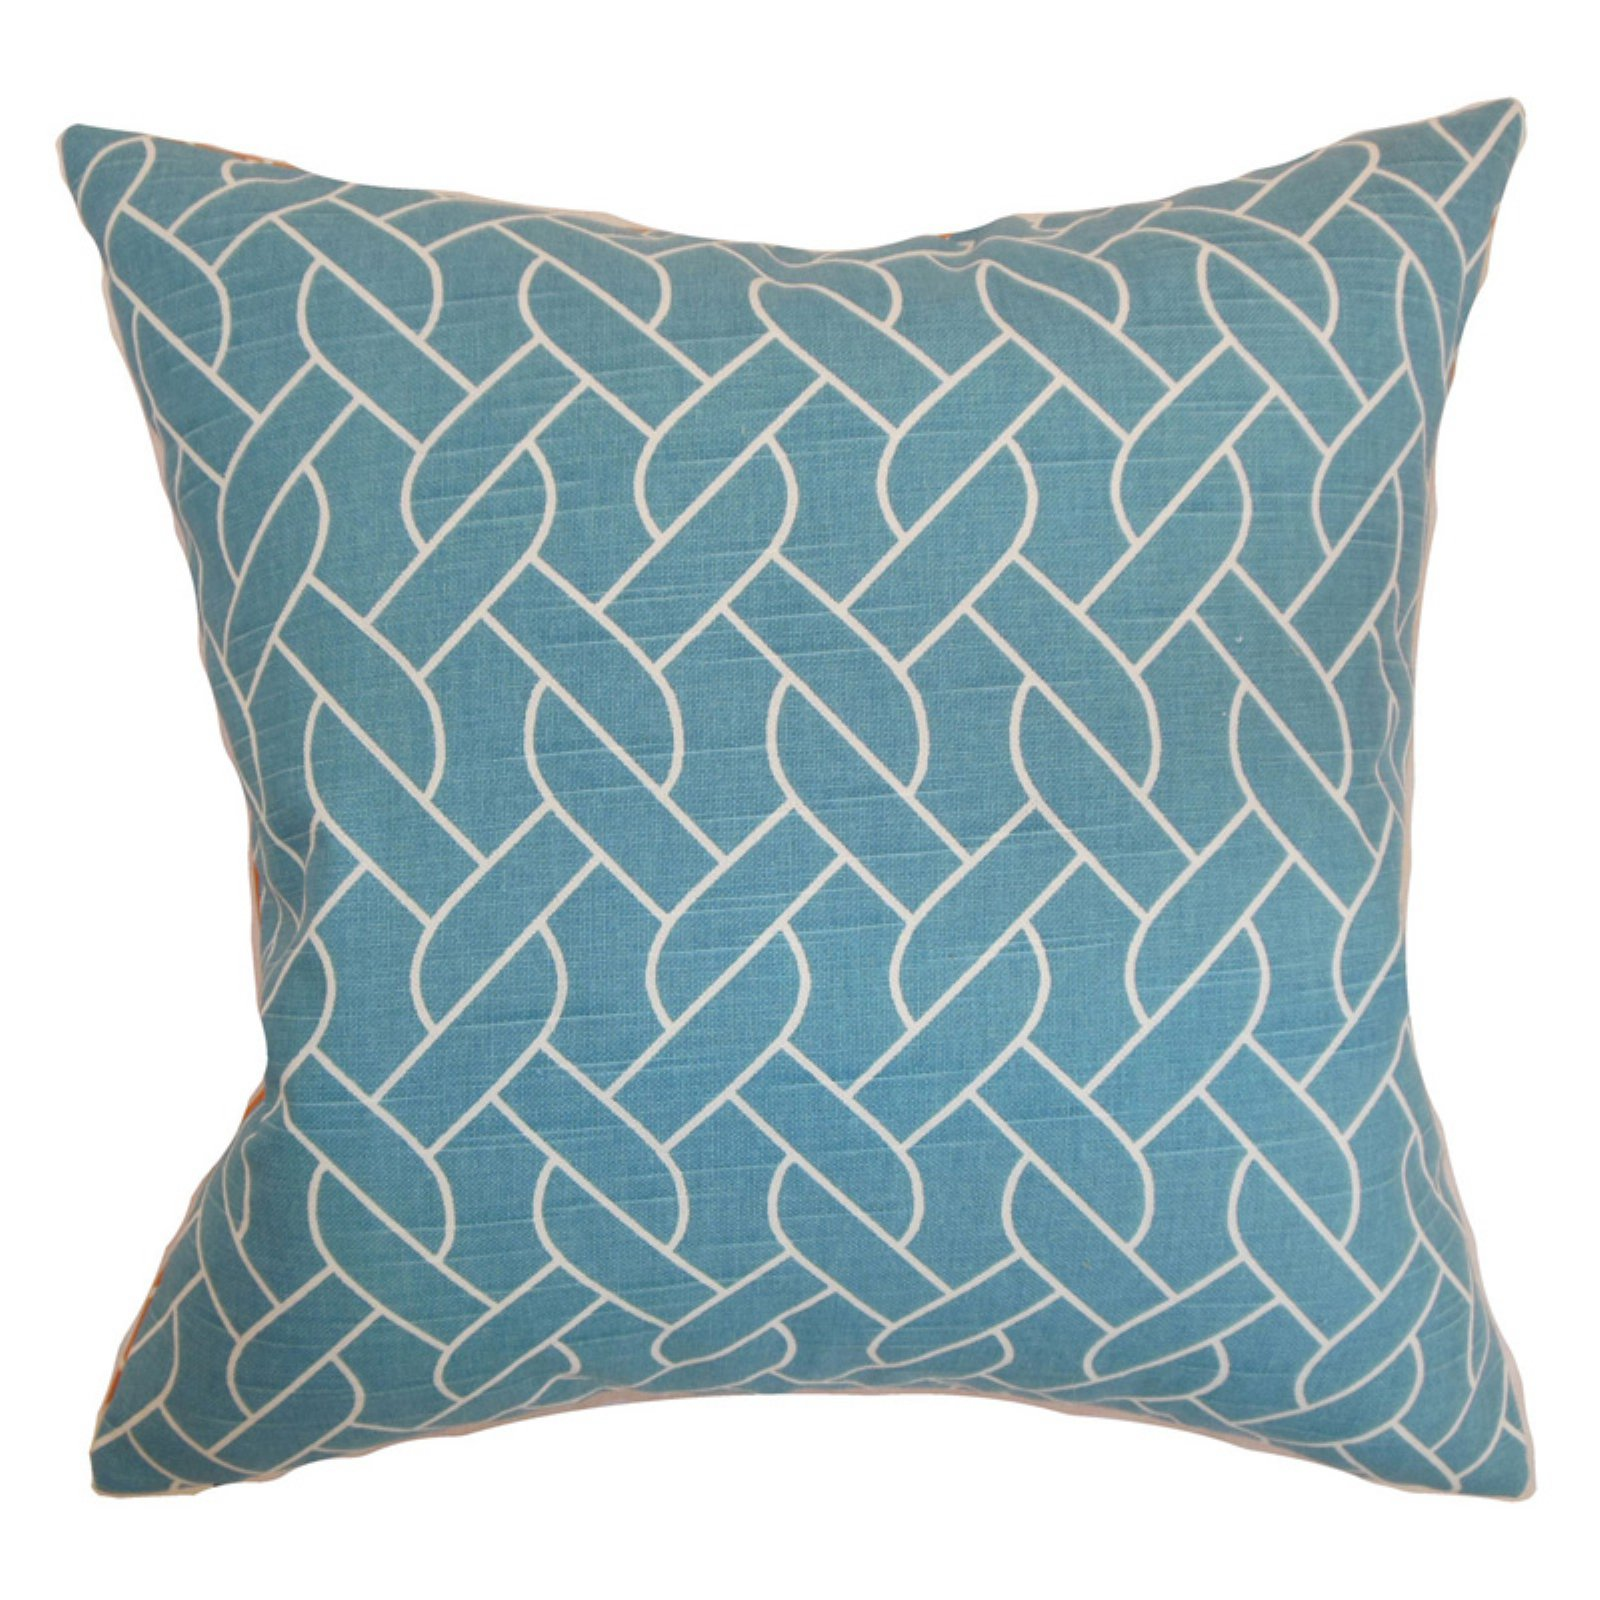 The Pillow Collection Neptune Geometric Pillow